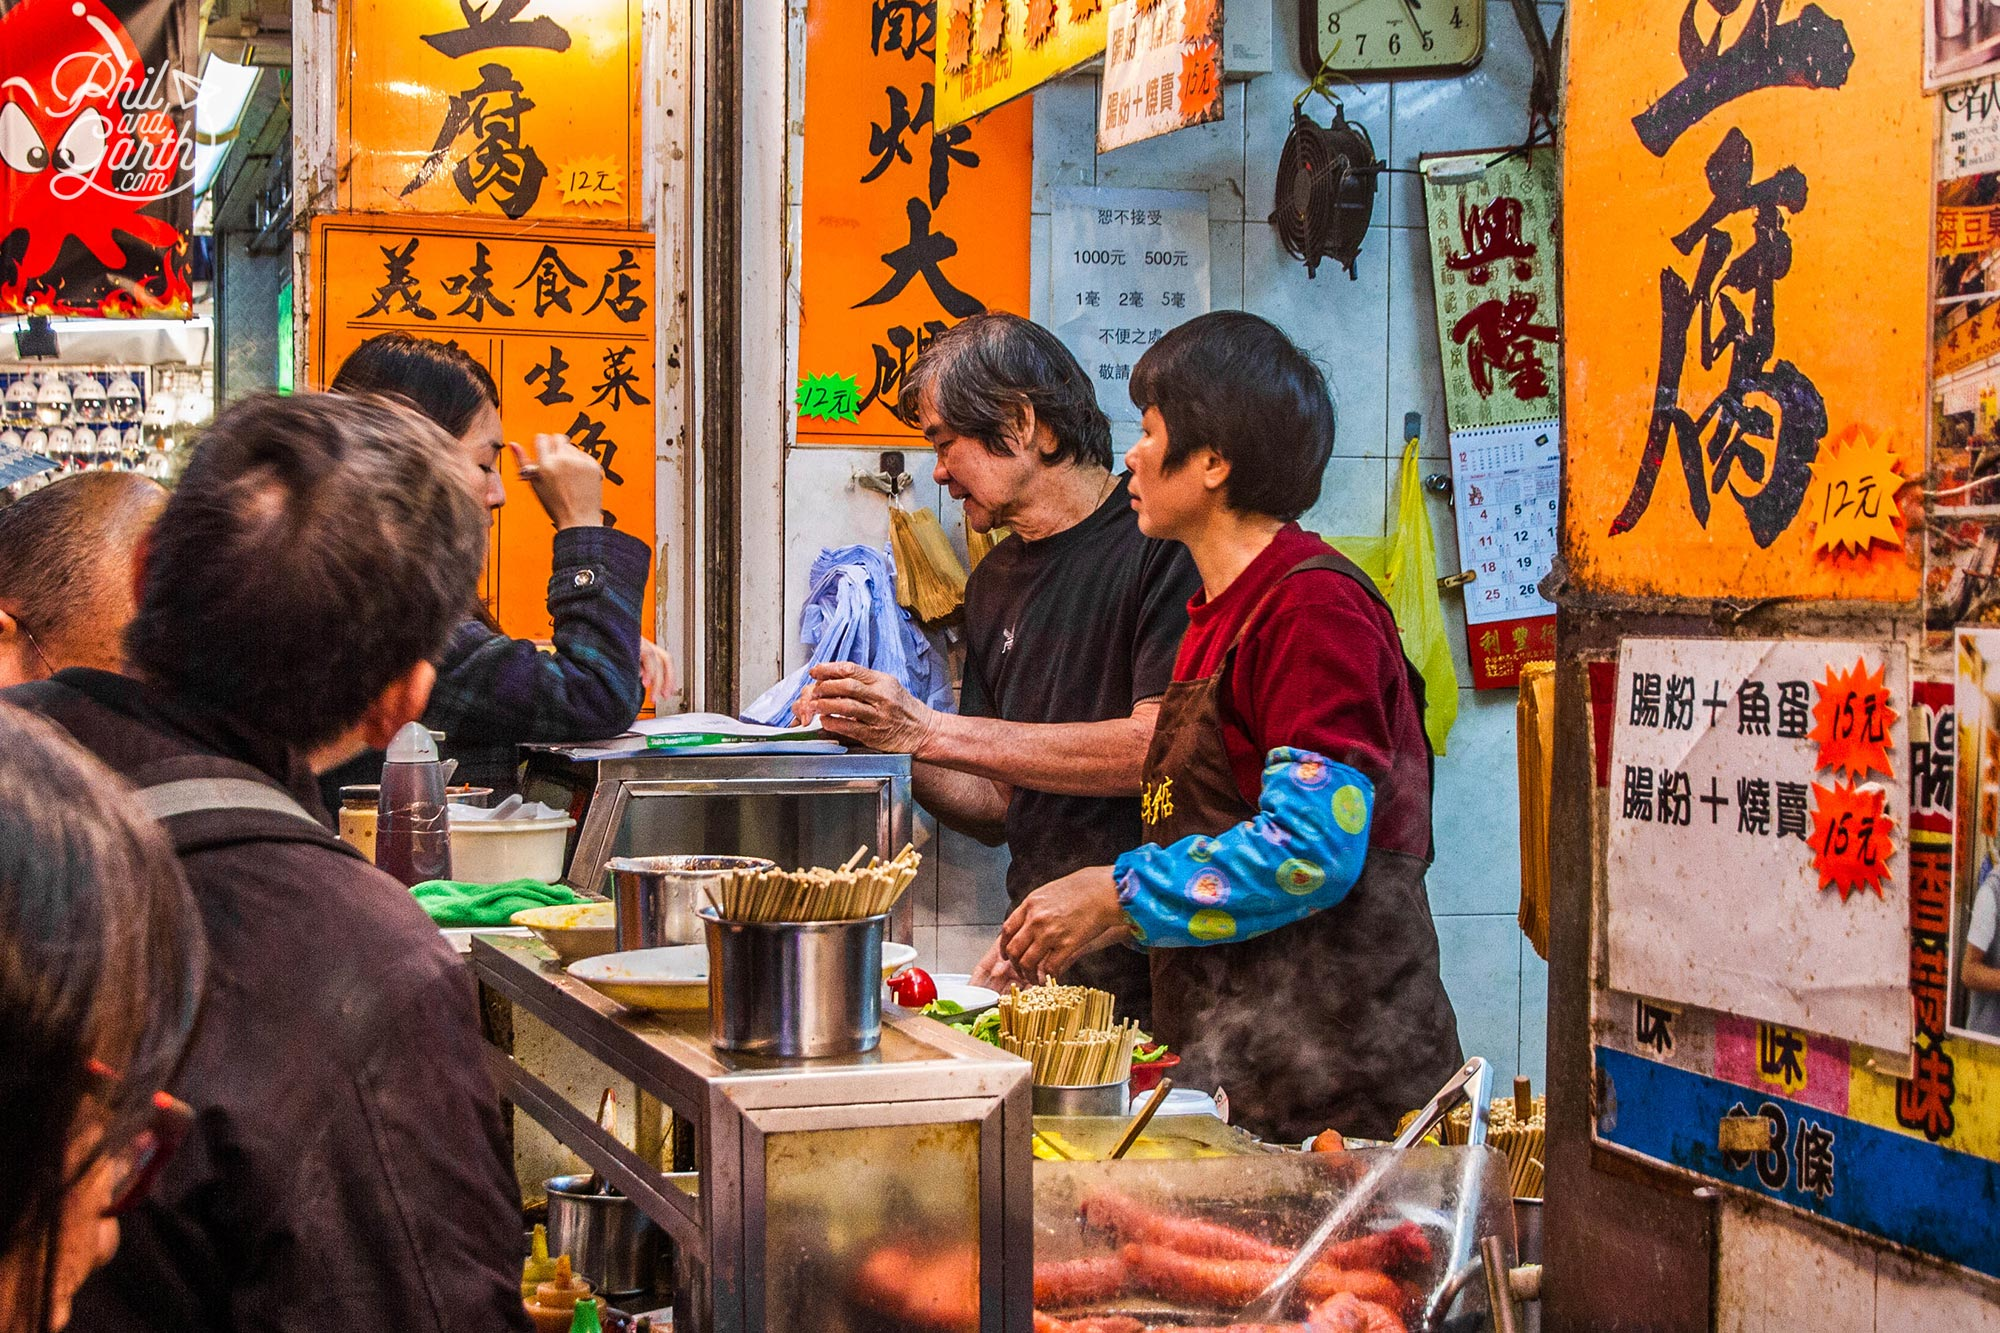 A street food counter in Mong Kok